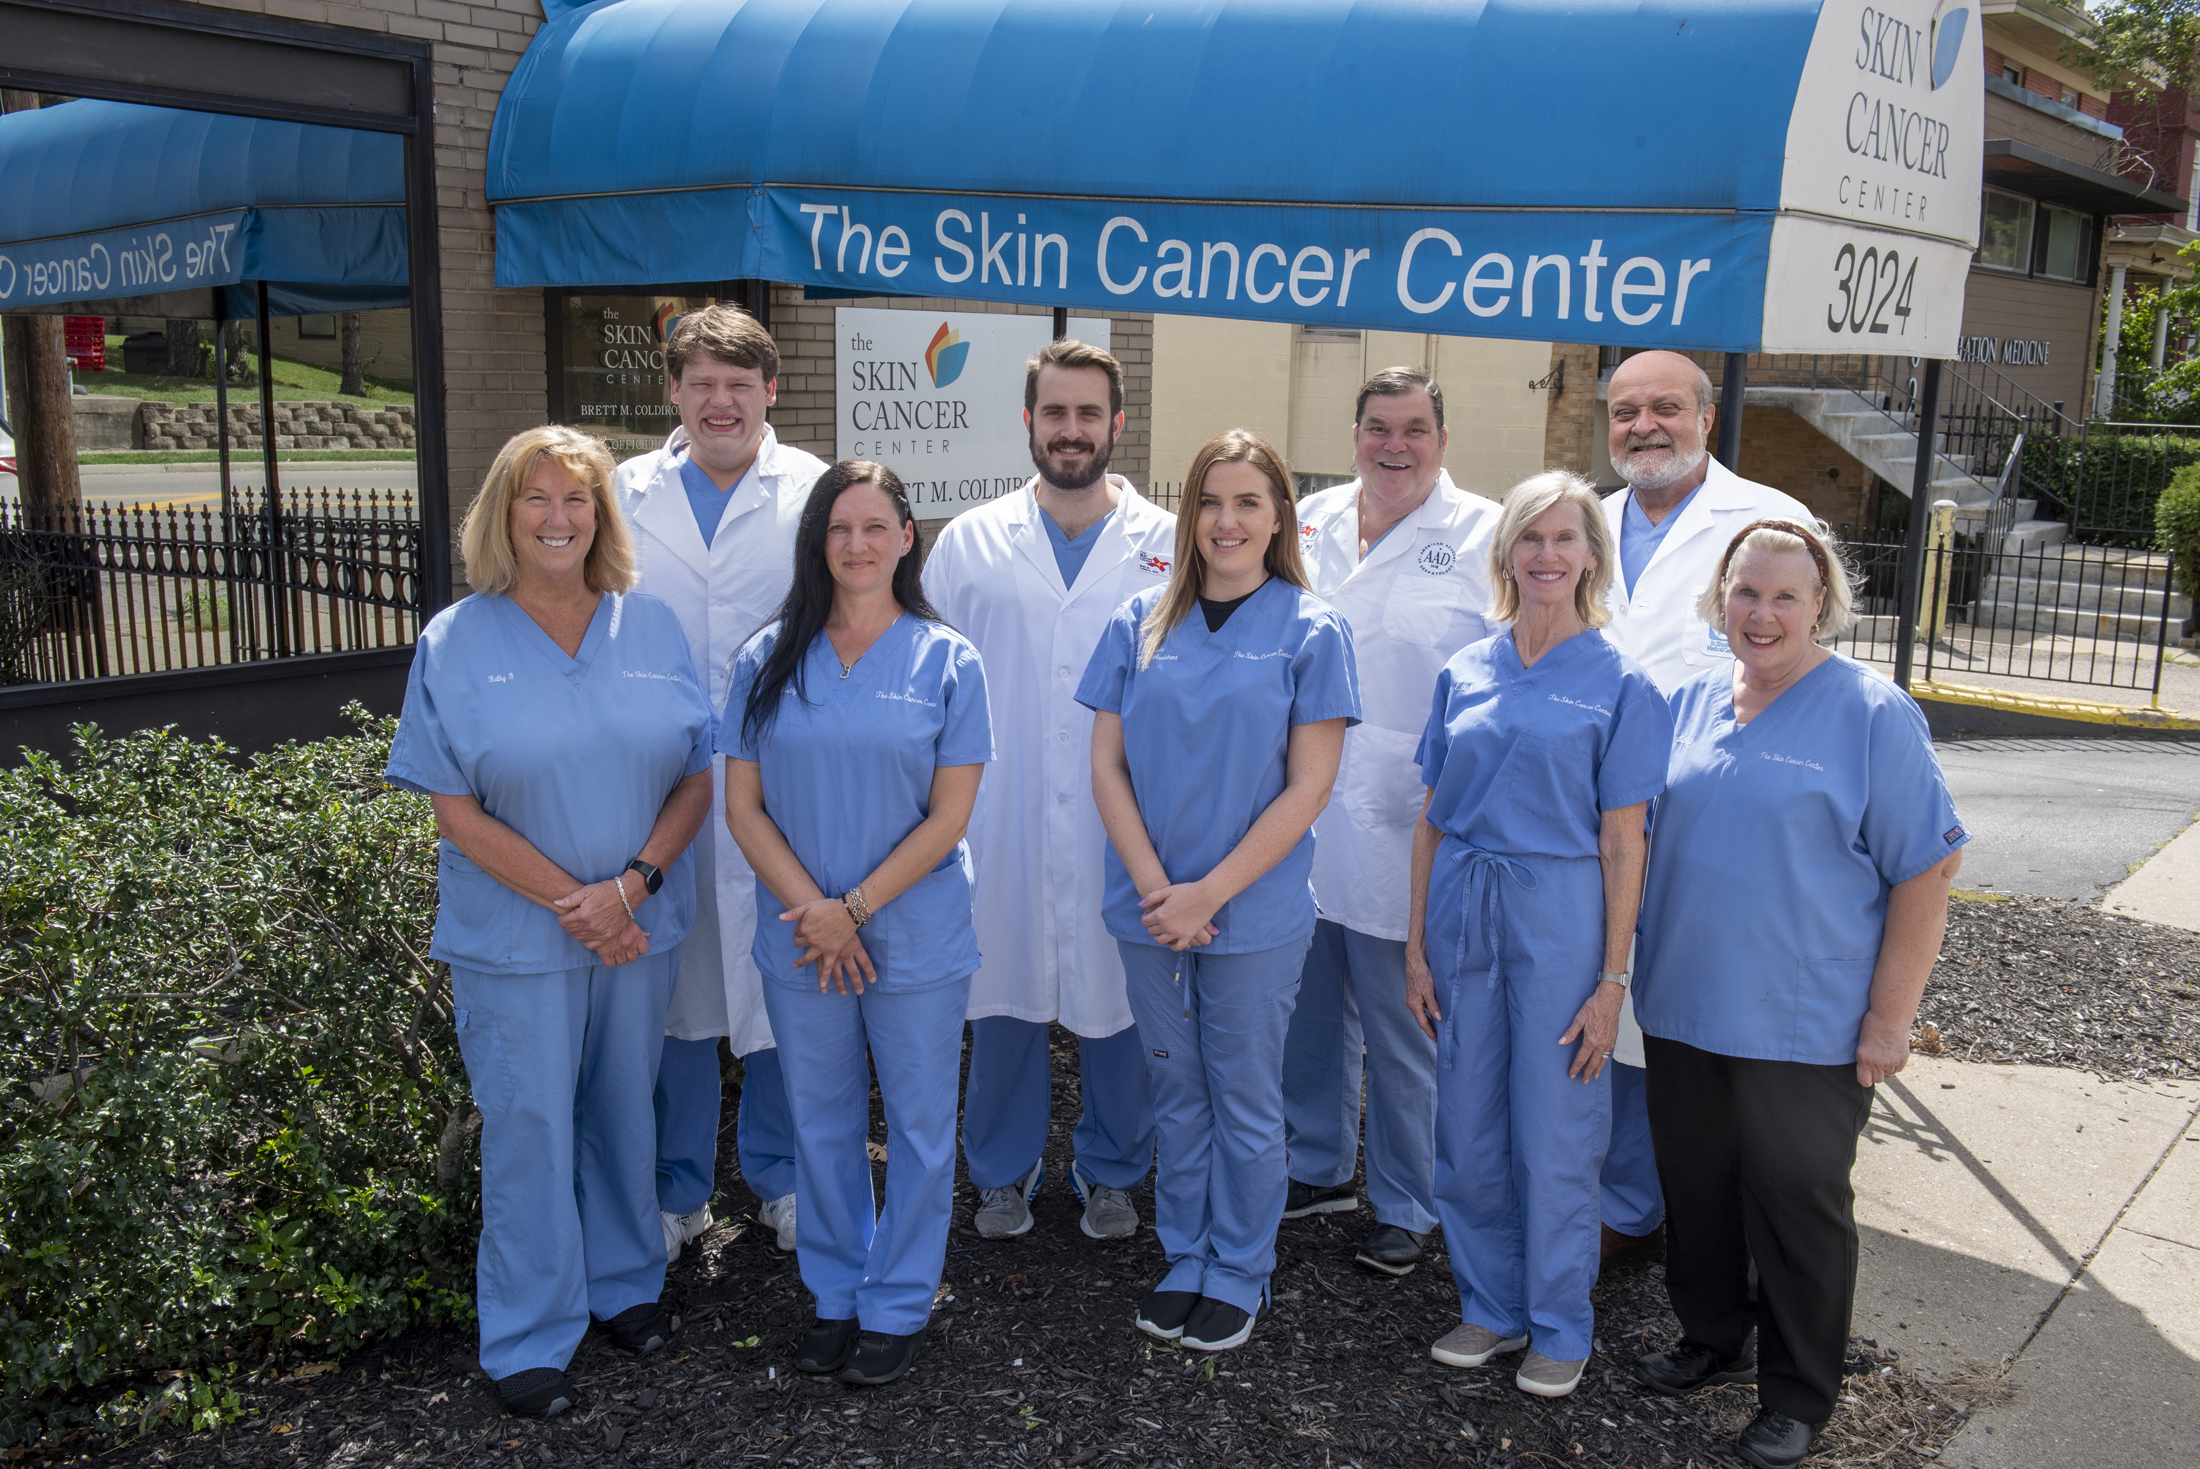 The Skin Cancer Center Group